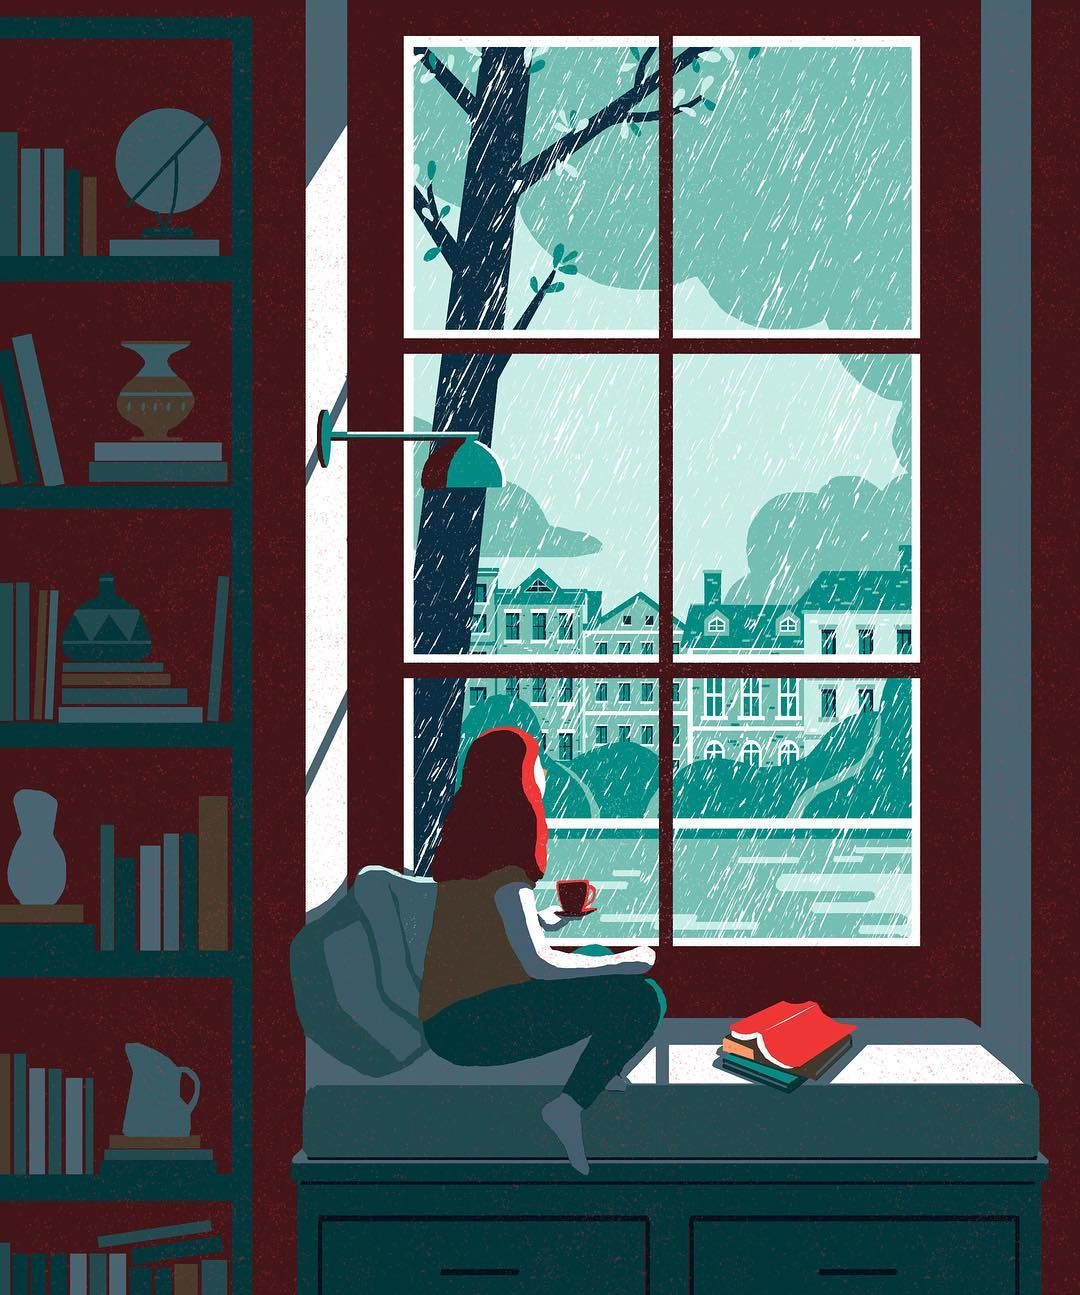 Watching the rain fall  .  .  #illustrationartists#illustration#illustrator#artist#drawing#painting#watching#rain#fall#spring#alone#일러스트레이션#일러스트#드로잉#그림